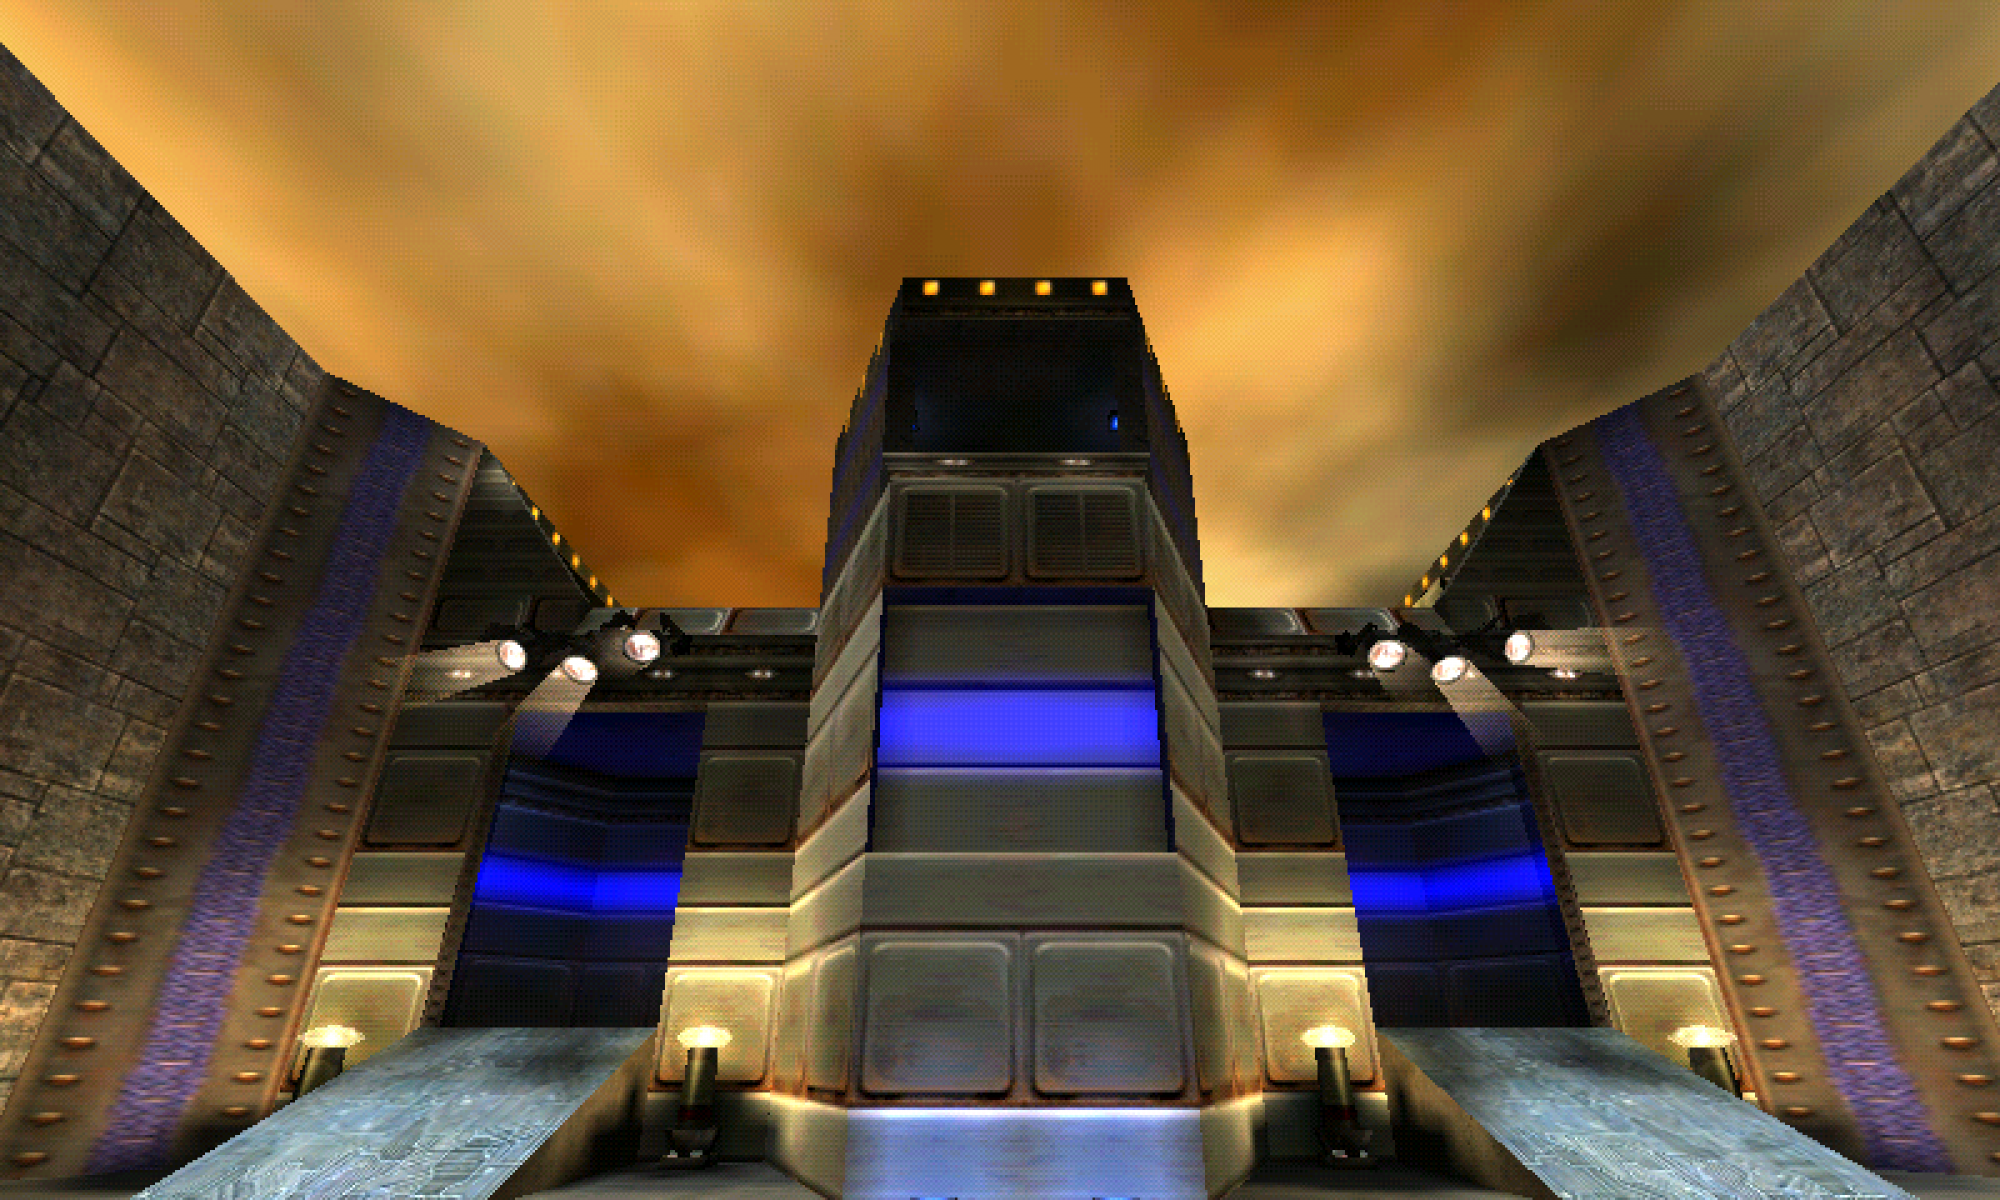 Weapons Factory Arena